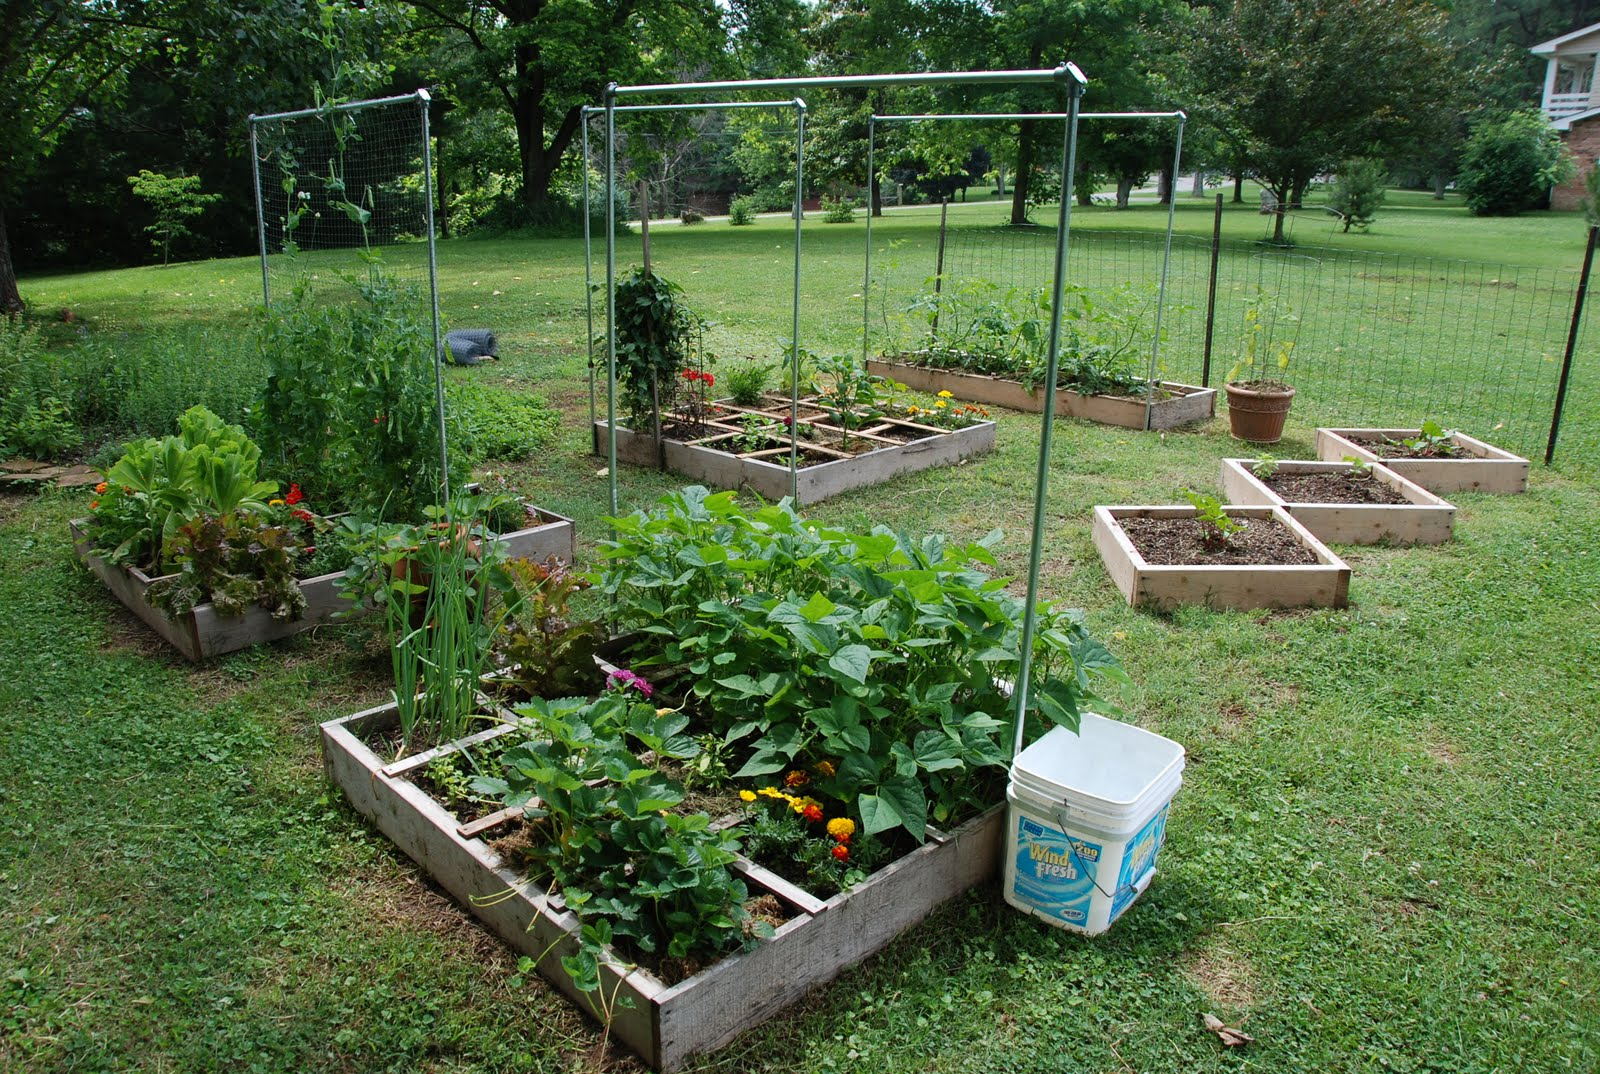 Backyard food garden ideas - Backyard Vegetable Farming About Our Gardening Adventure For This Year I D Better